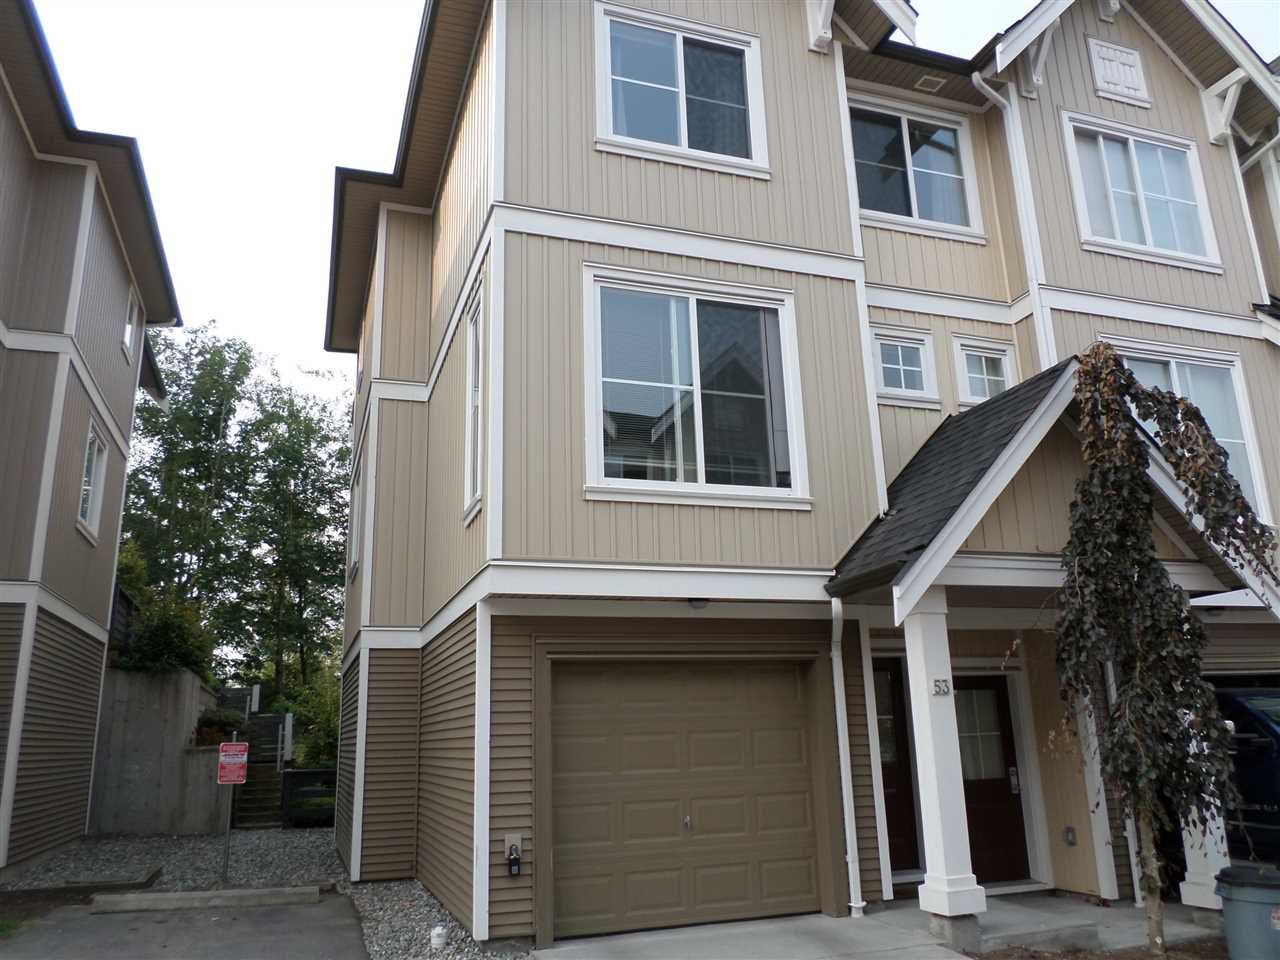 """Main Photo: 53 31032 WESTRIDGE Place in Abbotsford: Abbotsford West Townhouse for sale in """"HARVEST"""" : MLS®# R2194878"""